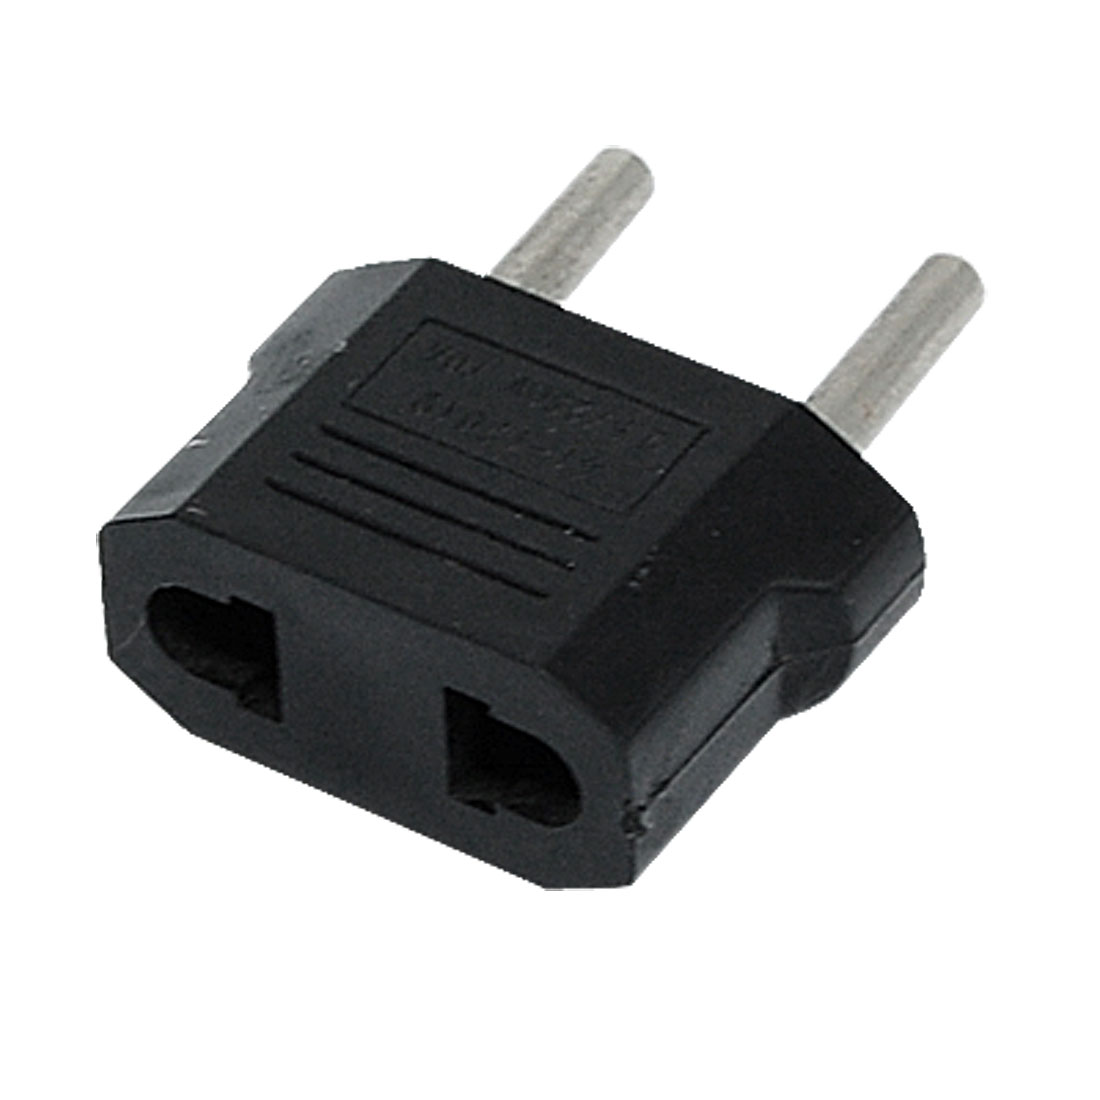 EU Plug 250VAC 10A to EU US Socket Travel Power Adapter Black